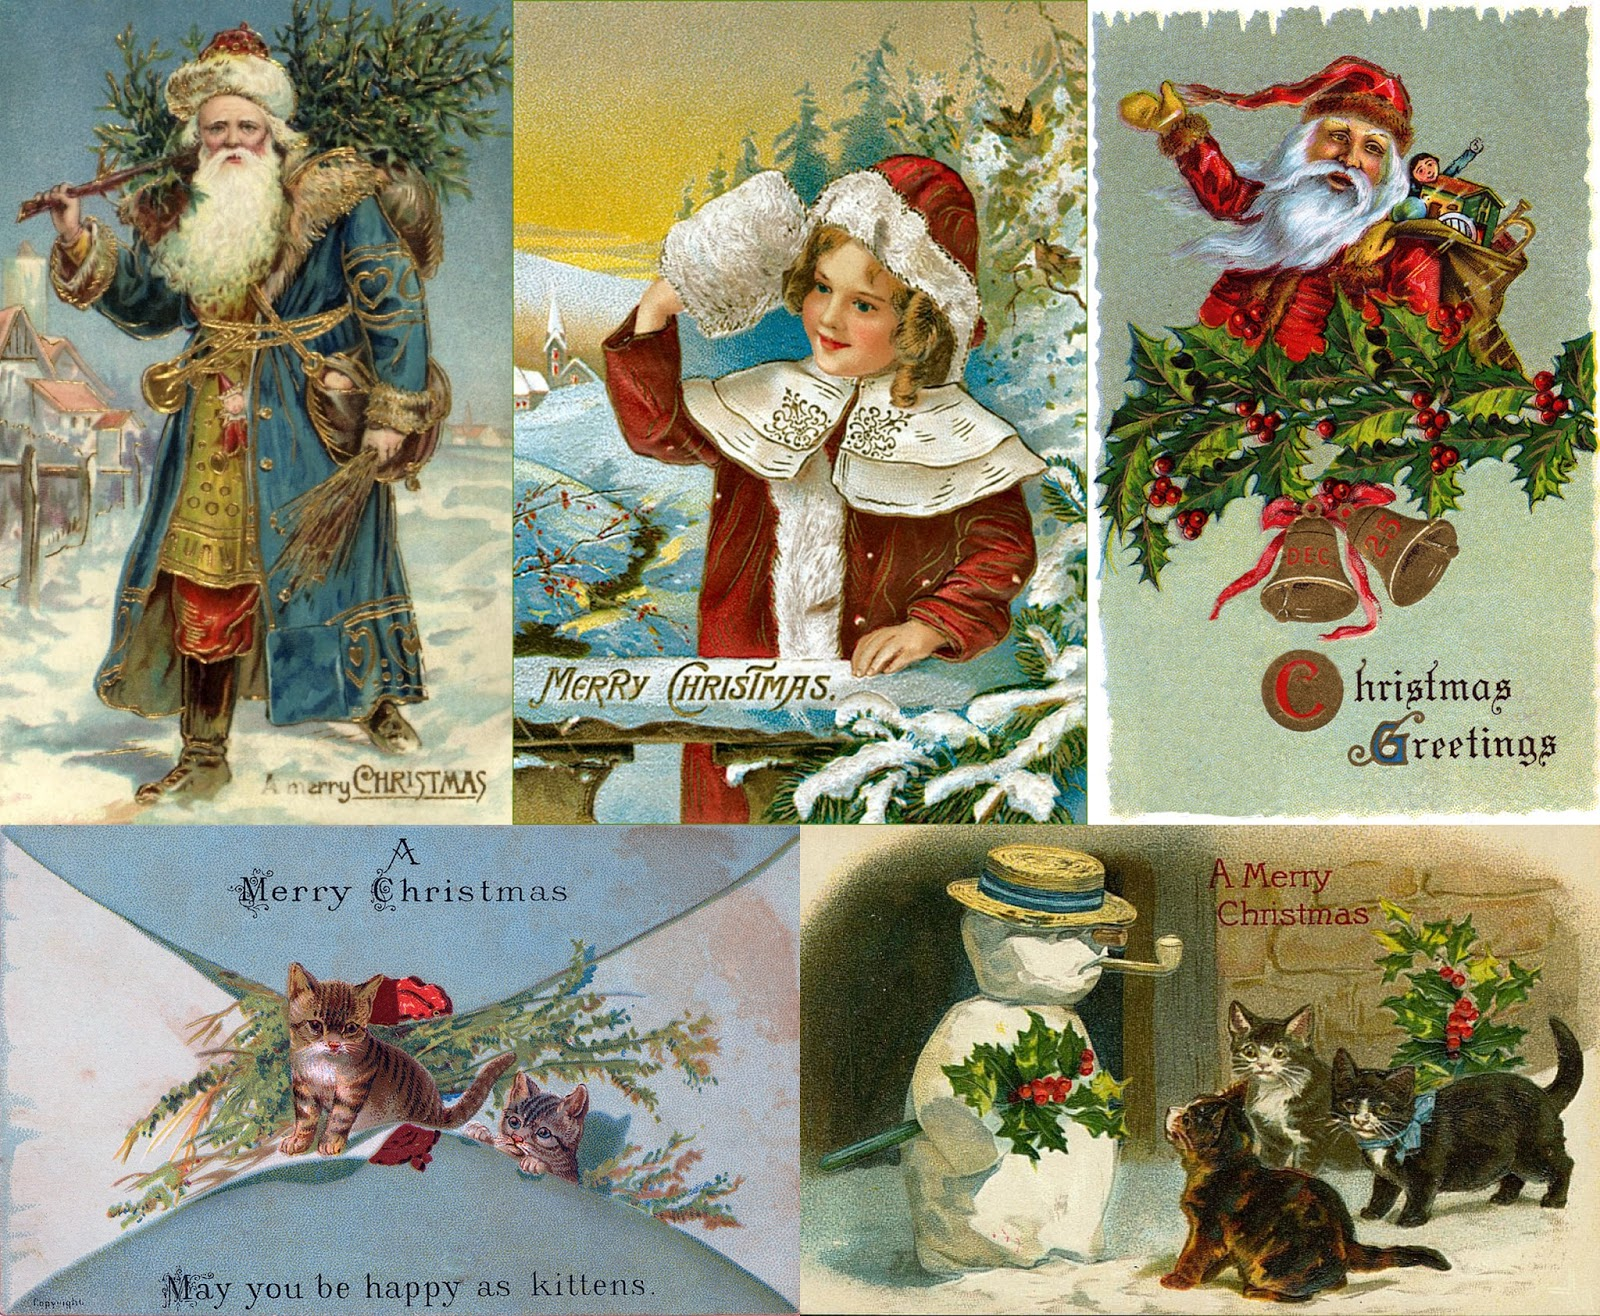 the first christmas card was sent in 1843 and the tradition became a popular one and we as you know still send cards today in large quantities